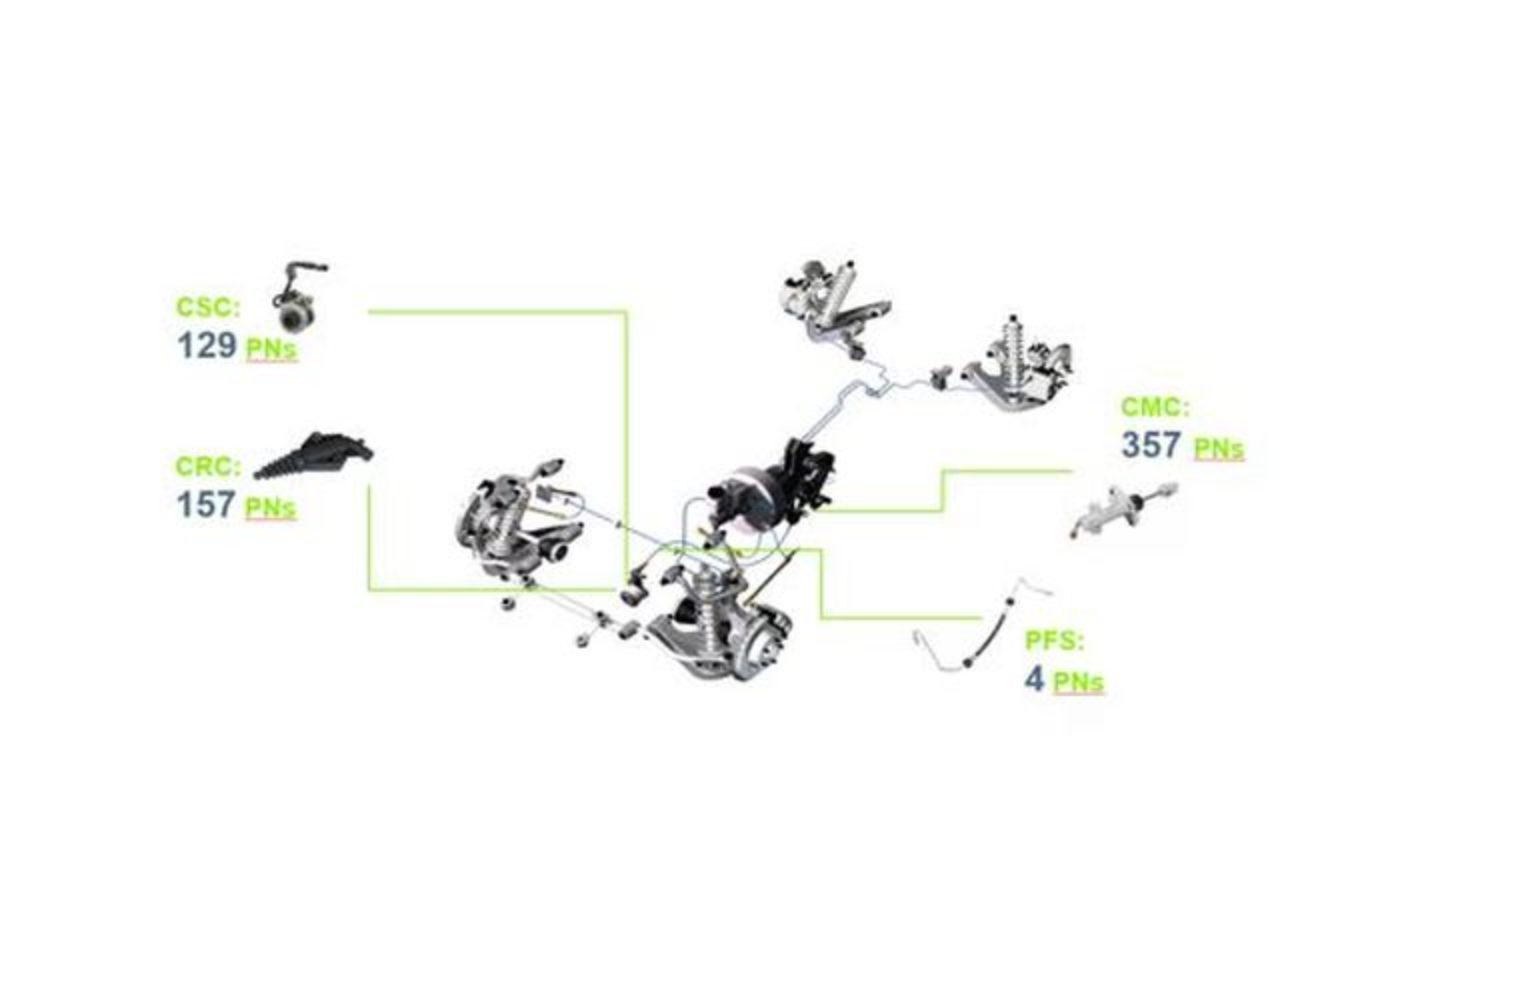 Cmc Motorcycle Wiring Diagram